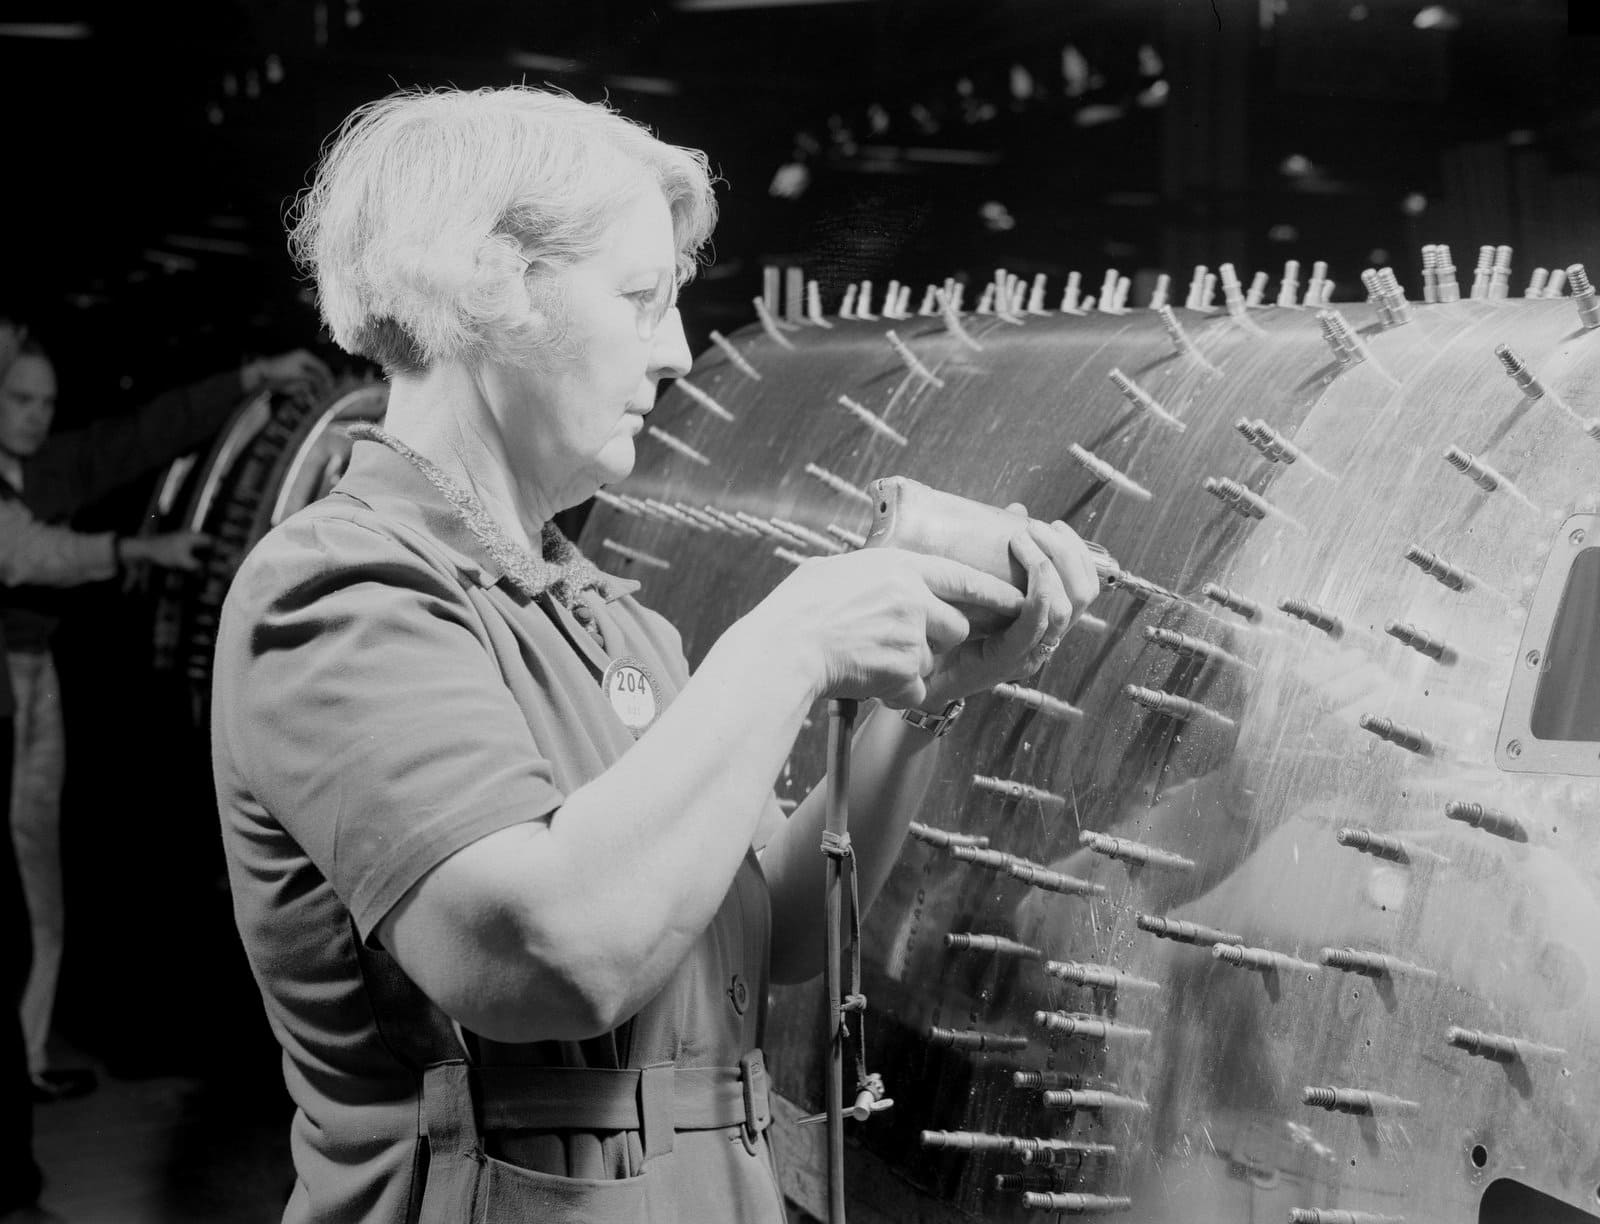 Drilling holes in a sub-assembly for a B-17F